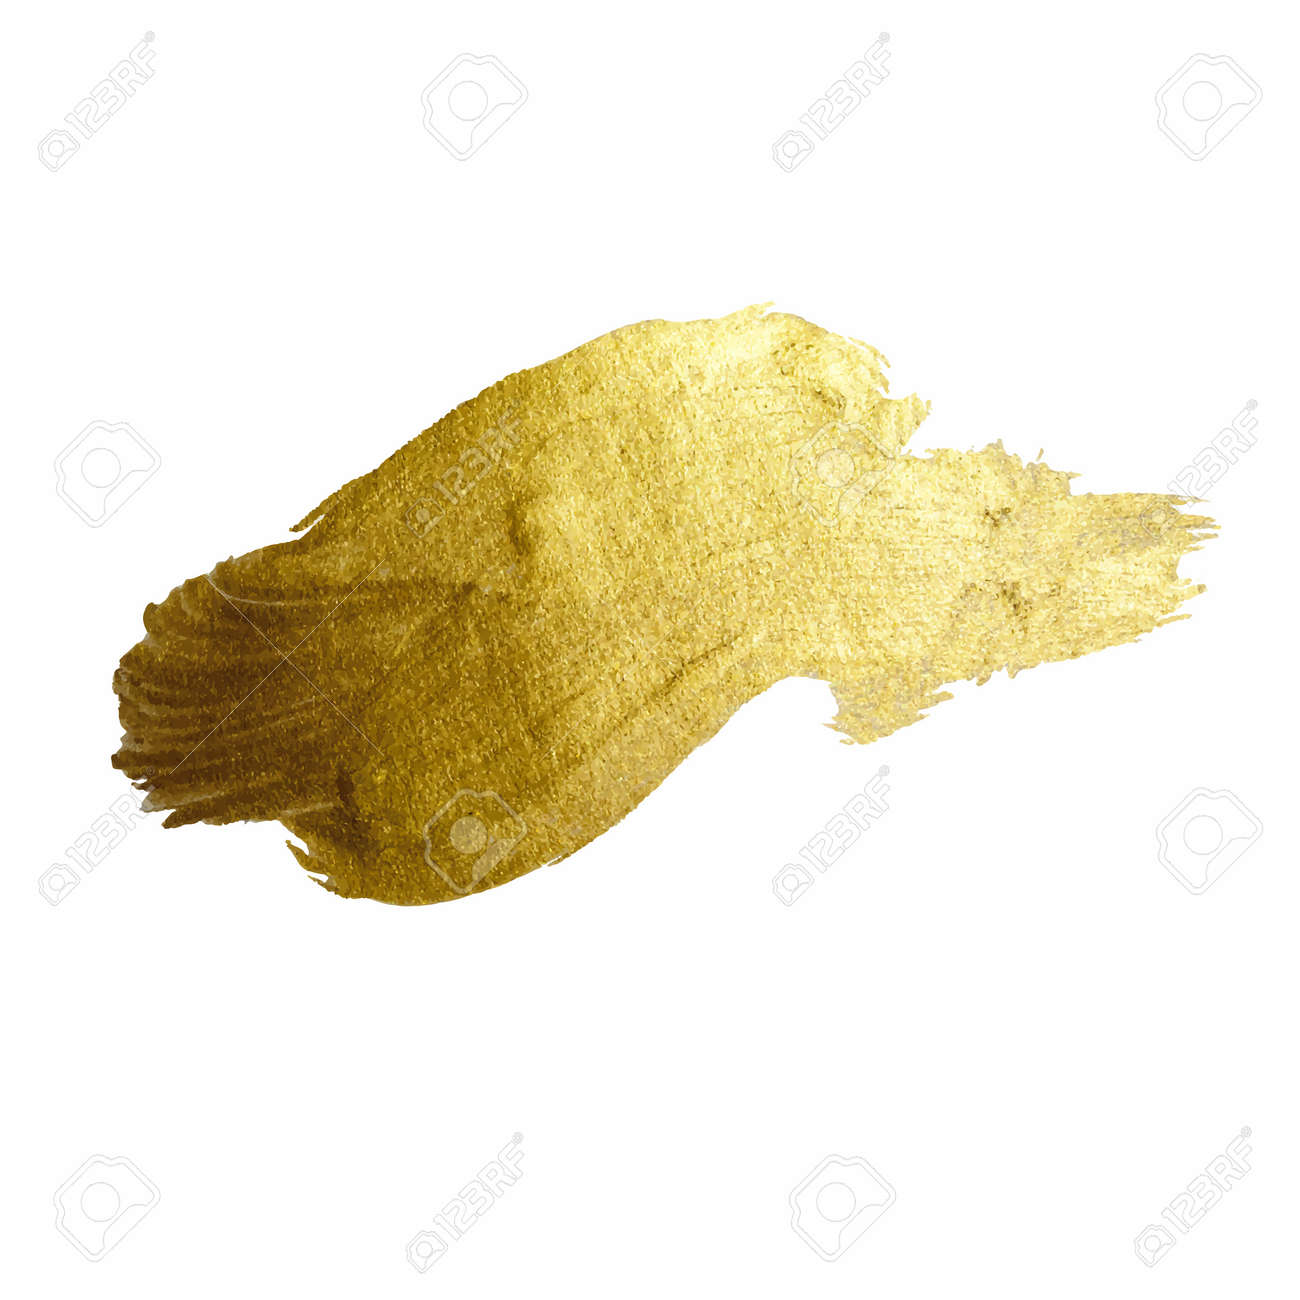 Gold Shining Paint Stain Hand Drawn Illustration Royalty Free ...